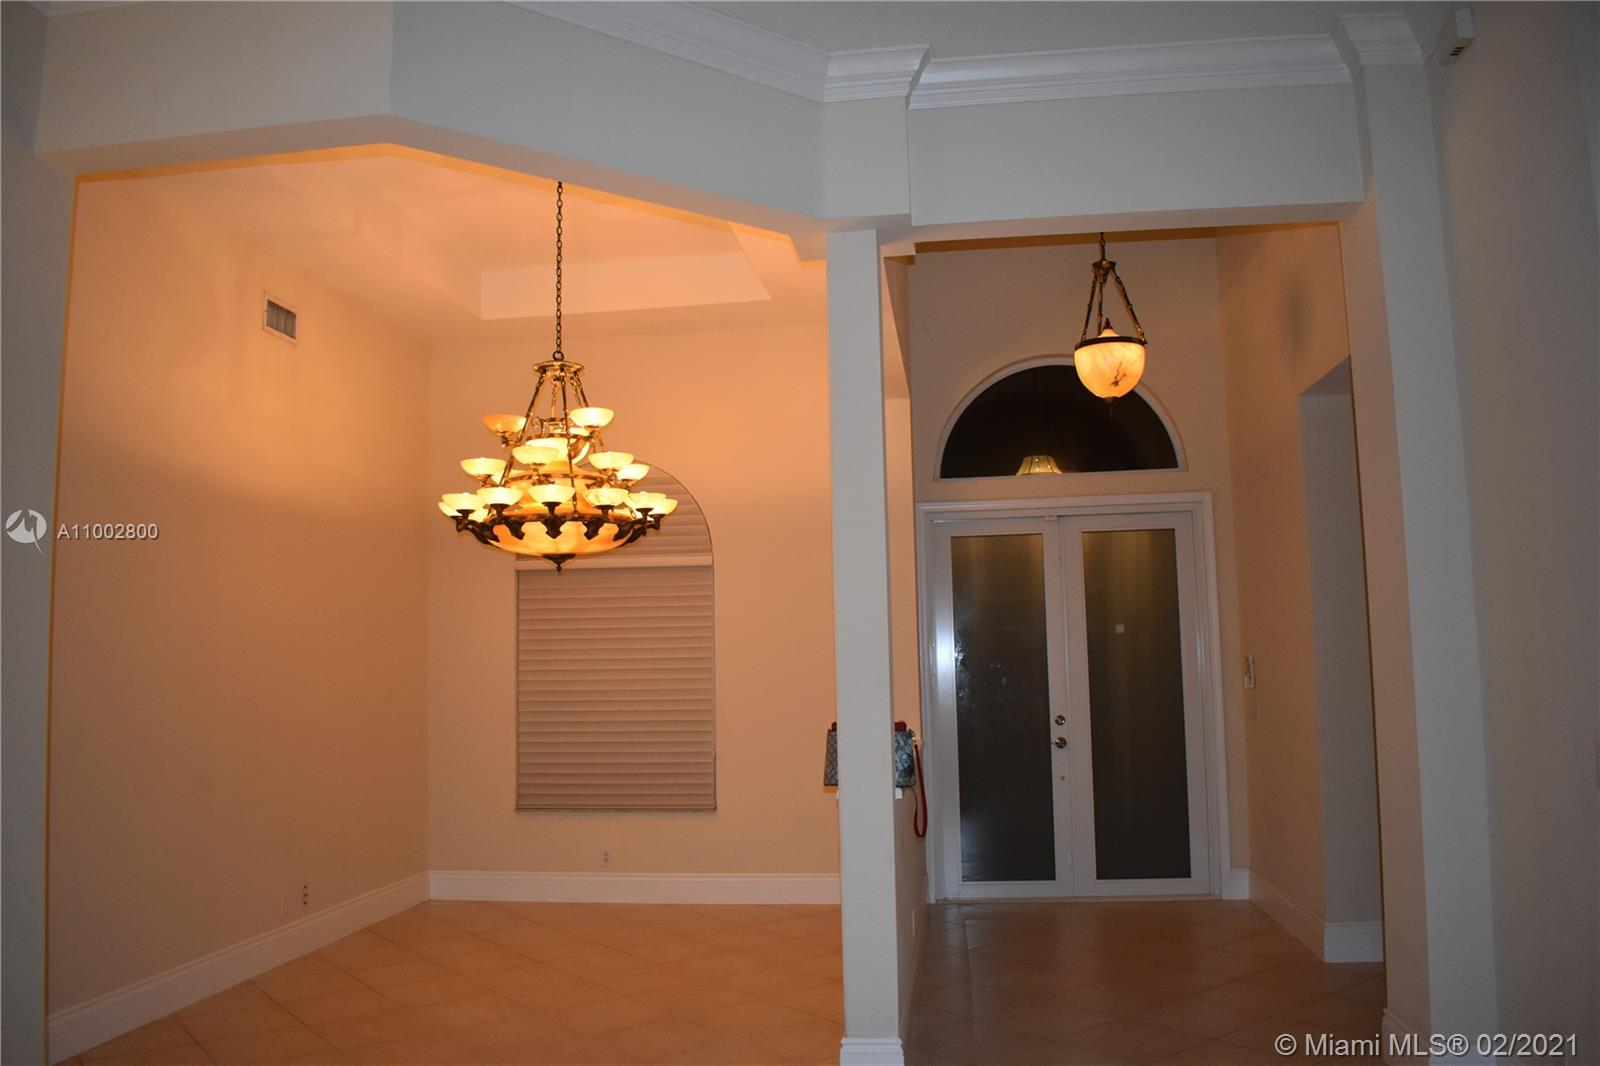 Great location in Weston Hills! Pool house on Amazing Golf course. Tile flooring on common area and wood on bedrooms. 4th bedroom is closer to the pool area and has tile. Partially remodeled house.Roof from 2017.Sliding doors were replaced.